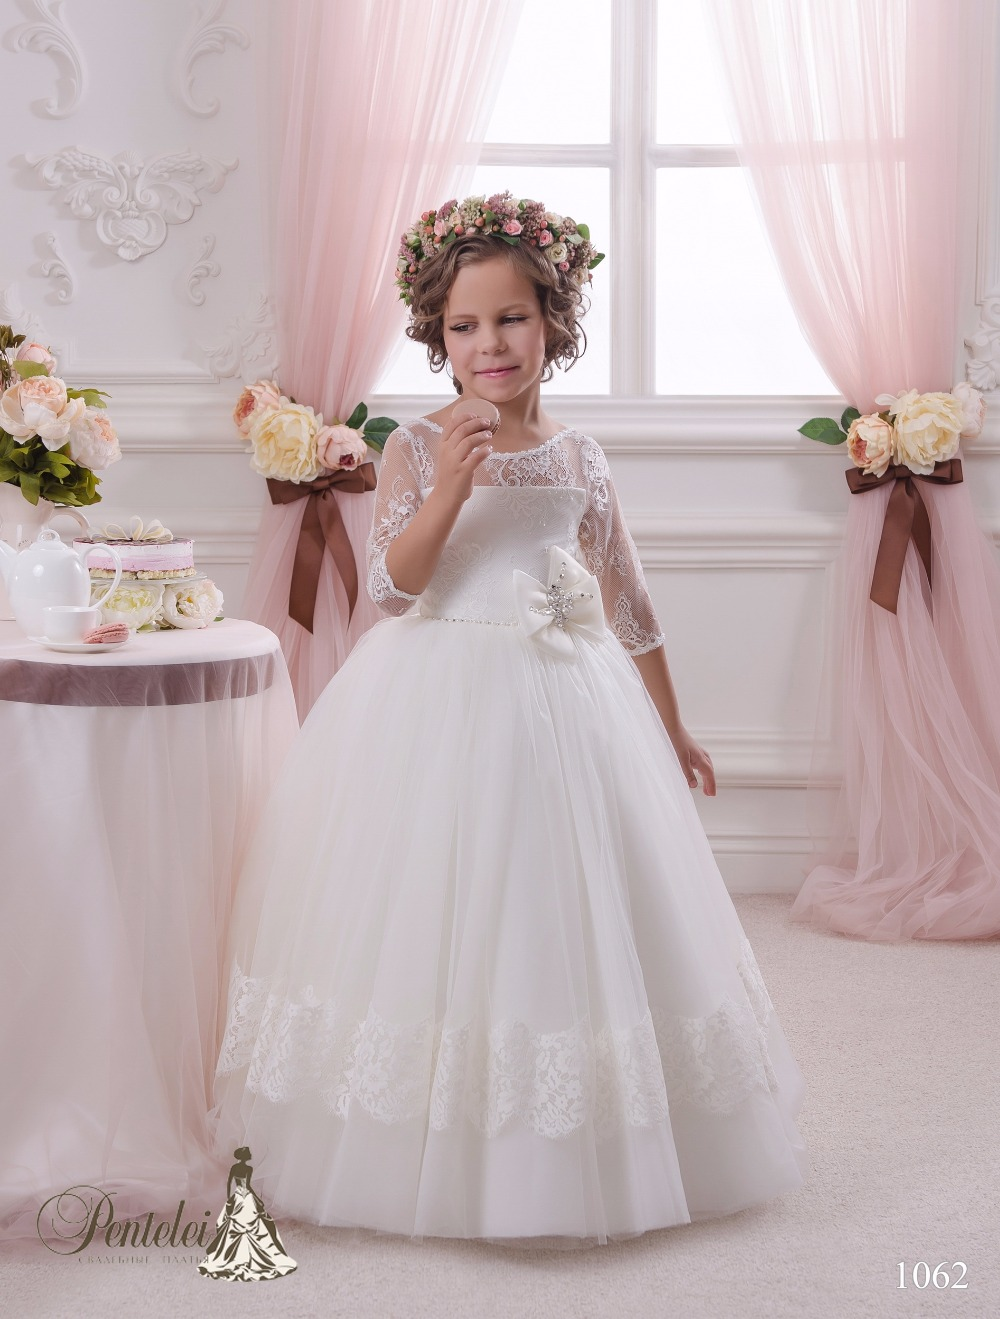 Holy First Communion Dresses Floor Length Tulle Ball Gown Infant Girl Pageant Baby Christening Dress Stunning Dresses 0-12 Year раскраски росмэн большая книга для самых маленьких